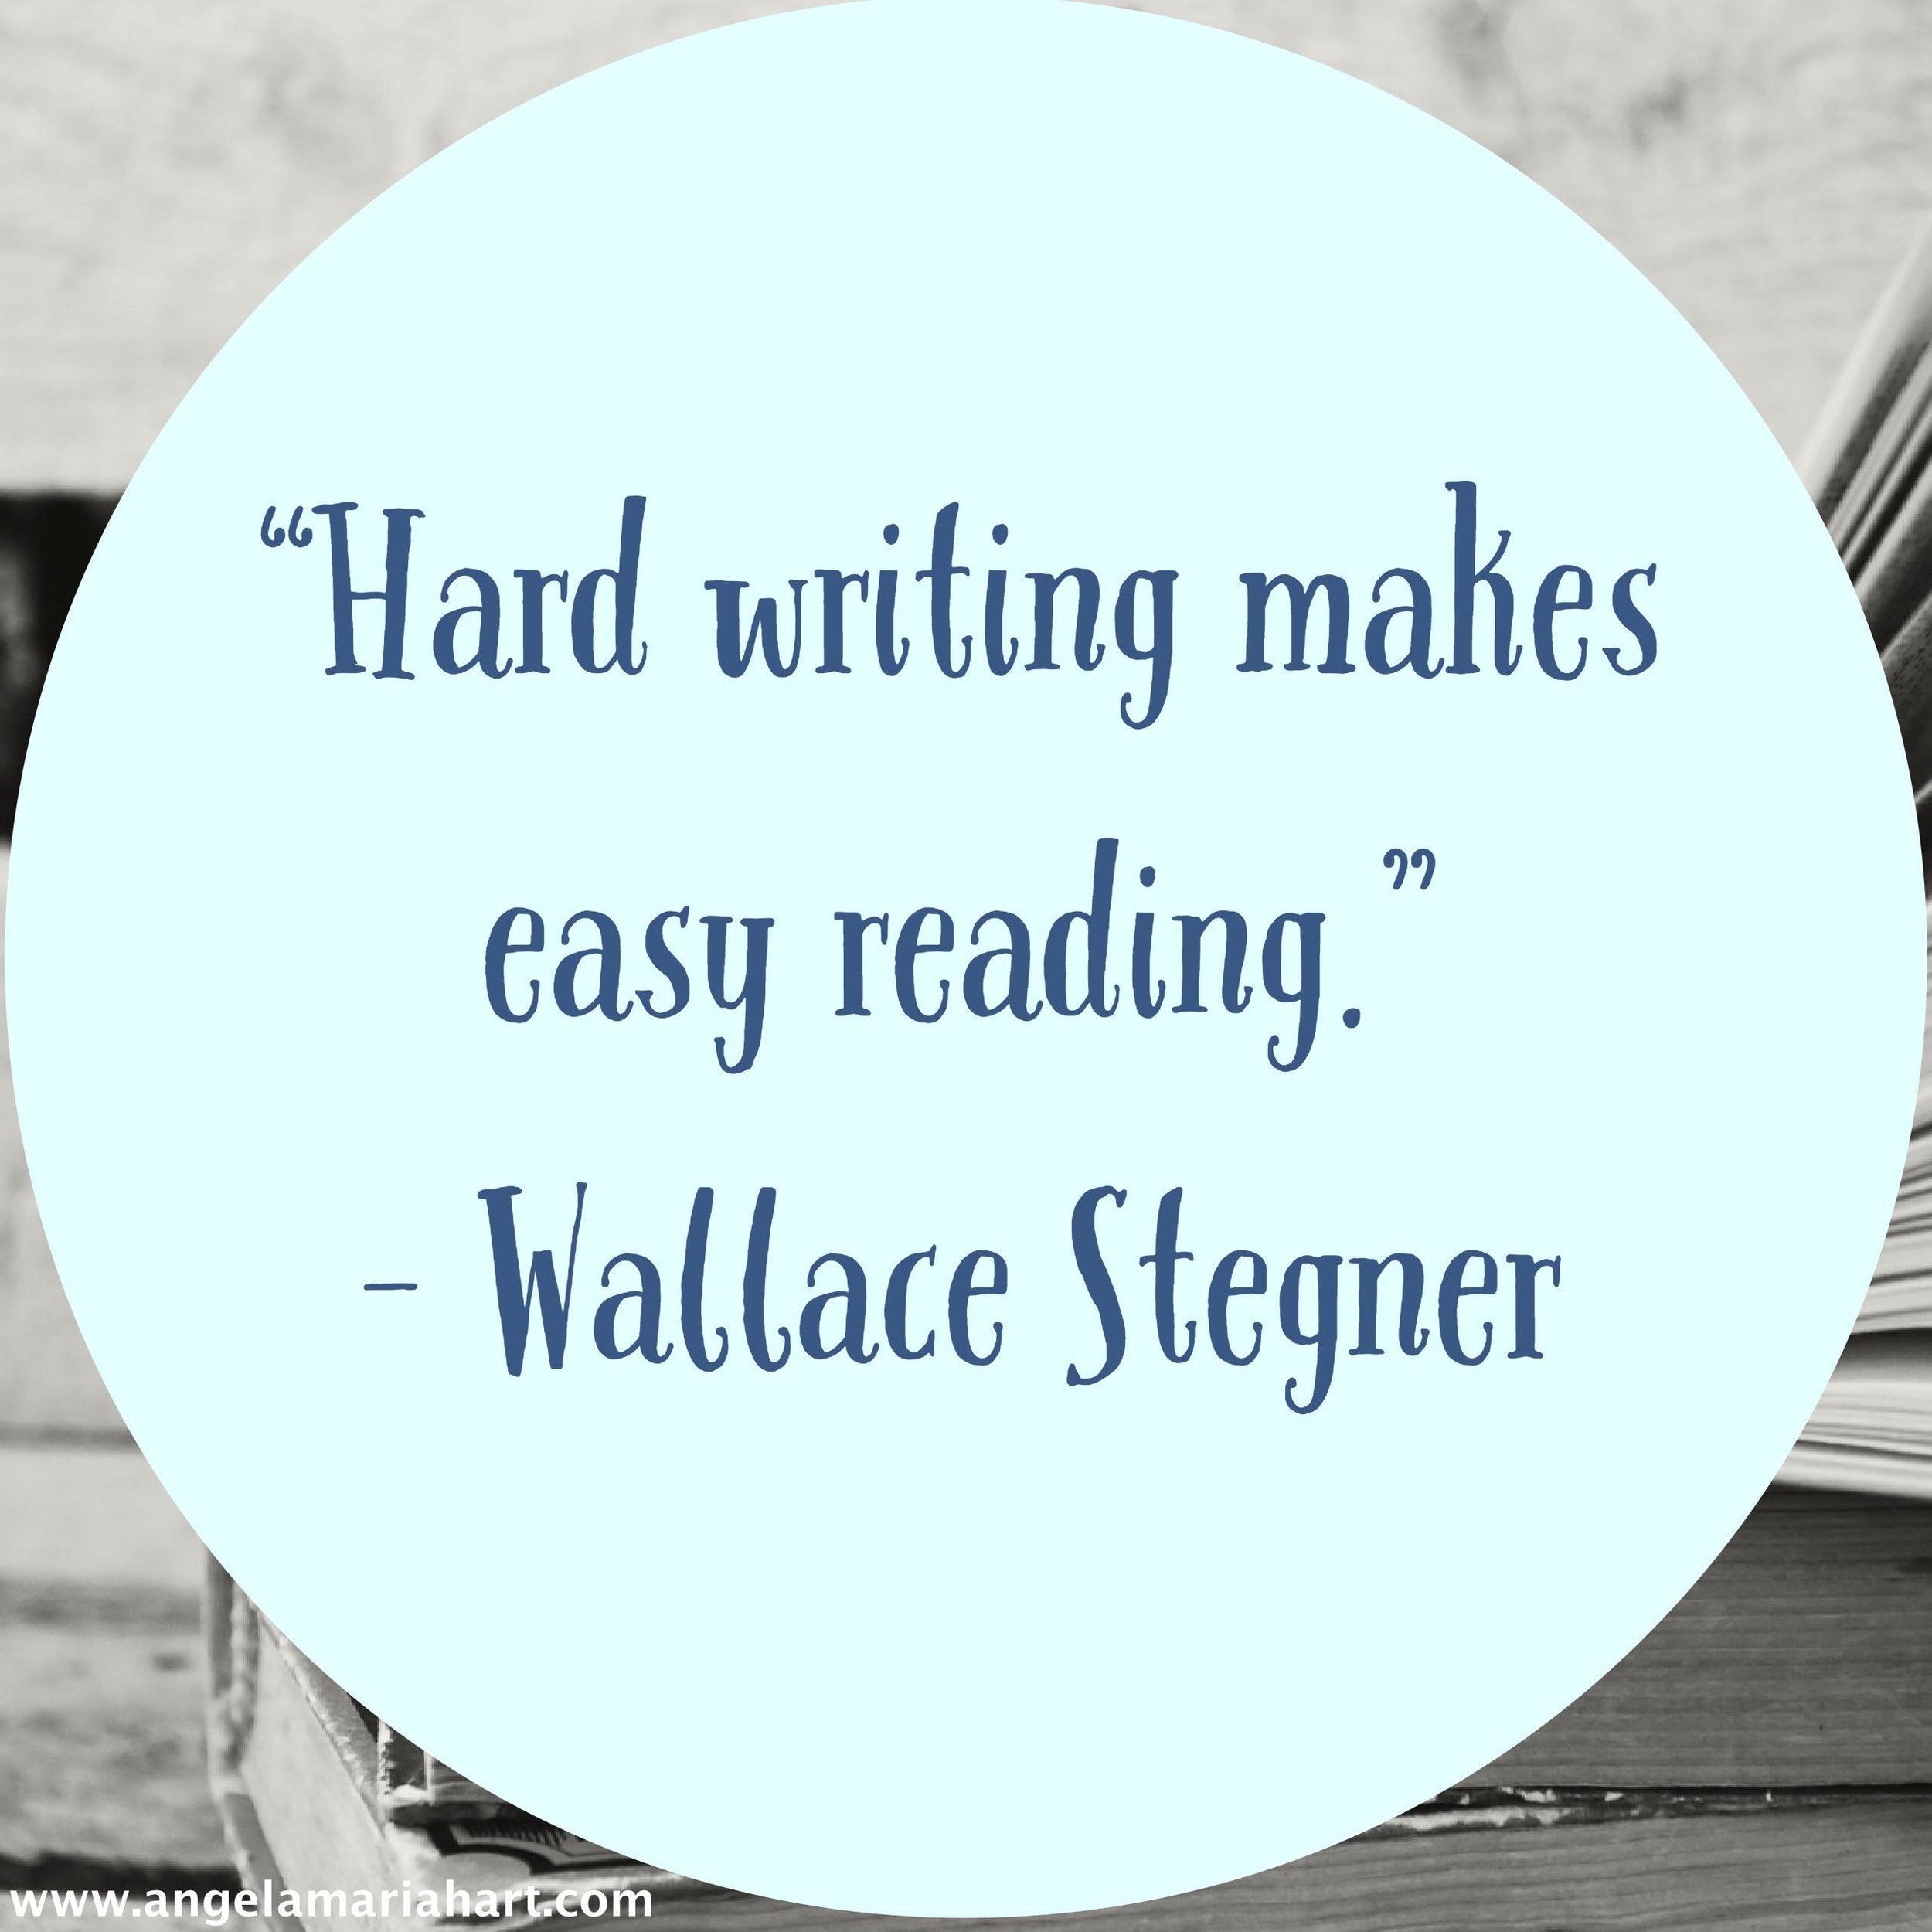 wallave stegner quote.jpg